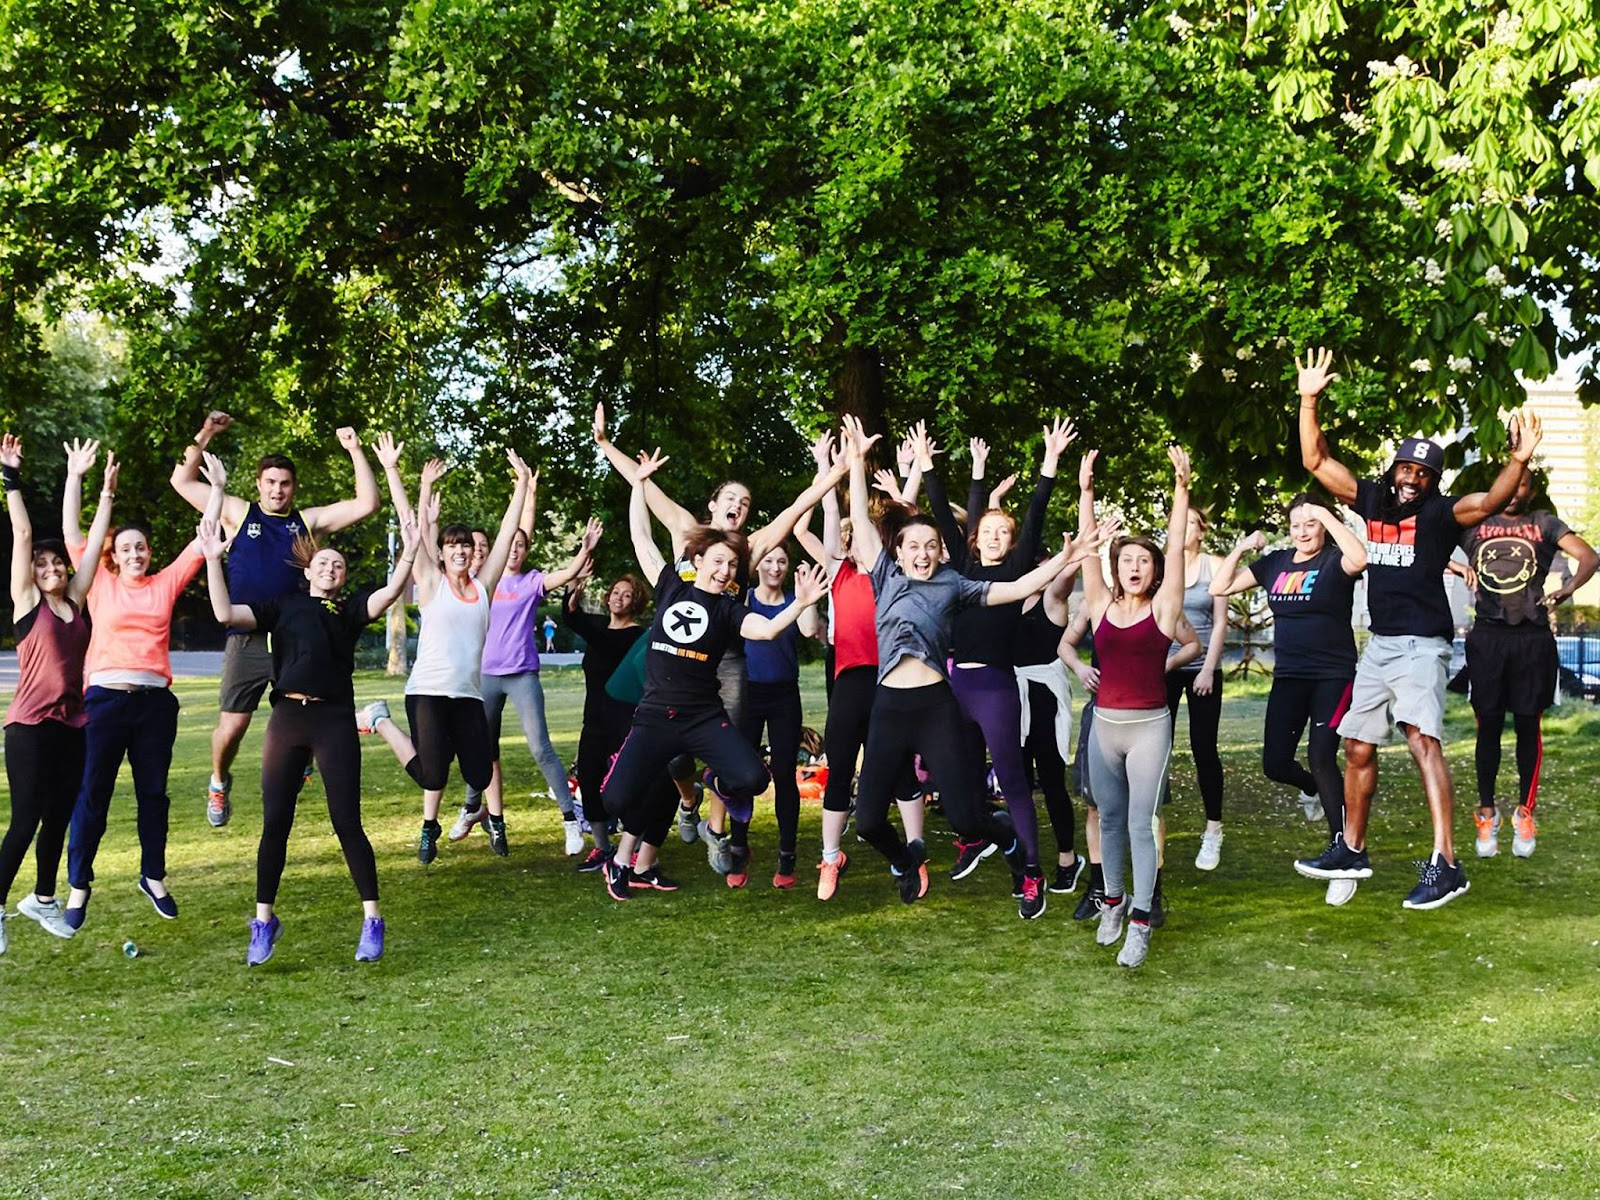 OURPARKS | GoSweat | 5 Places to Sweat for Free in South London